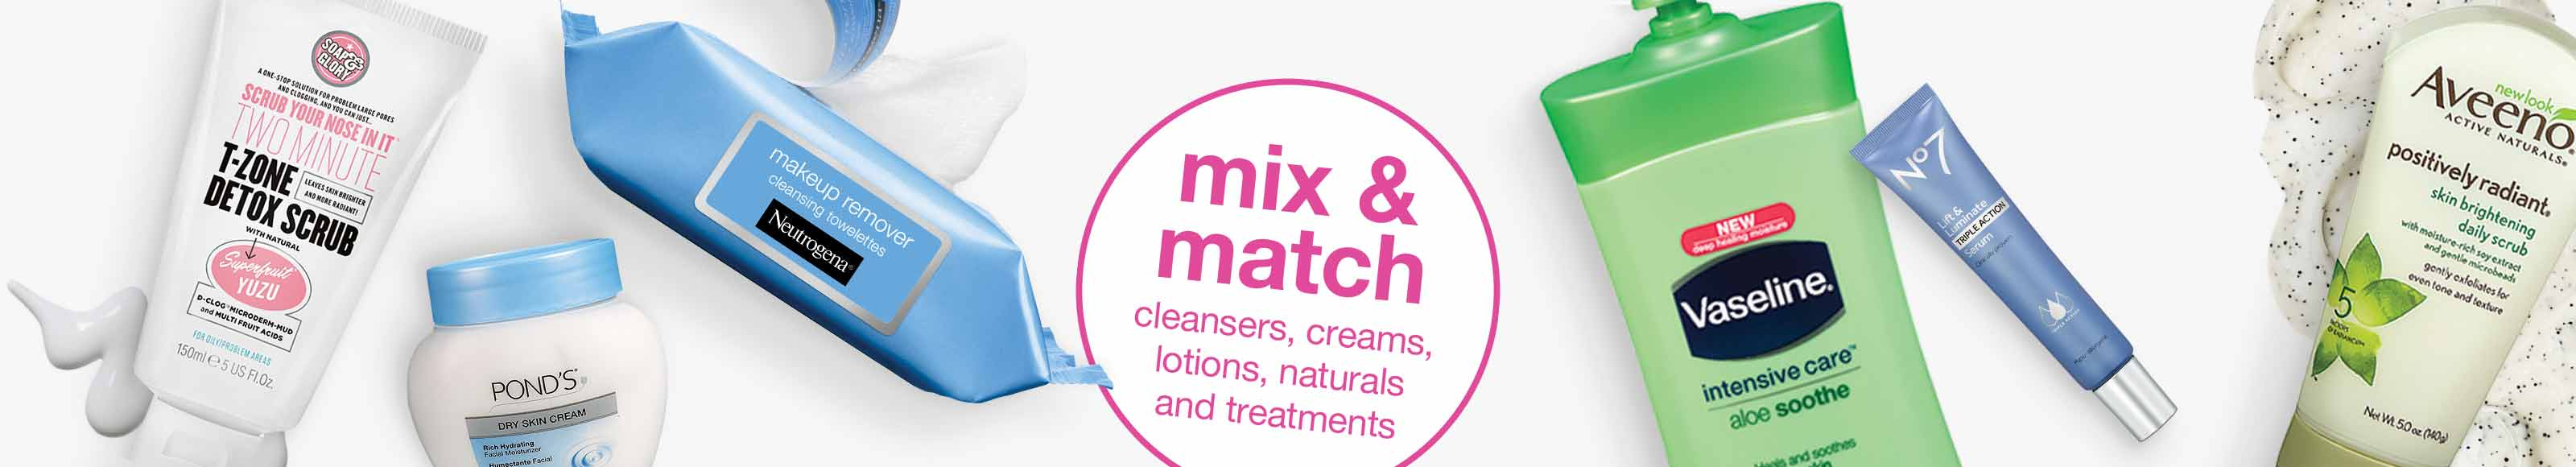 Skin Care - Mix & Match cleansers, creams, lotions, naturals and treatments.